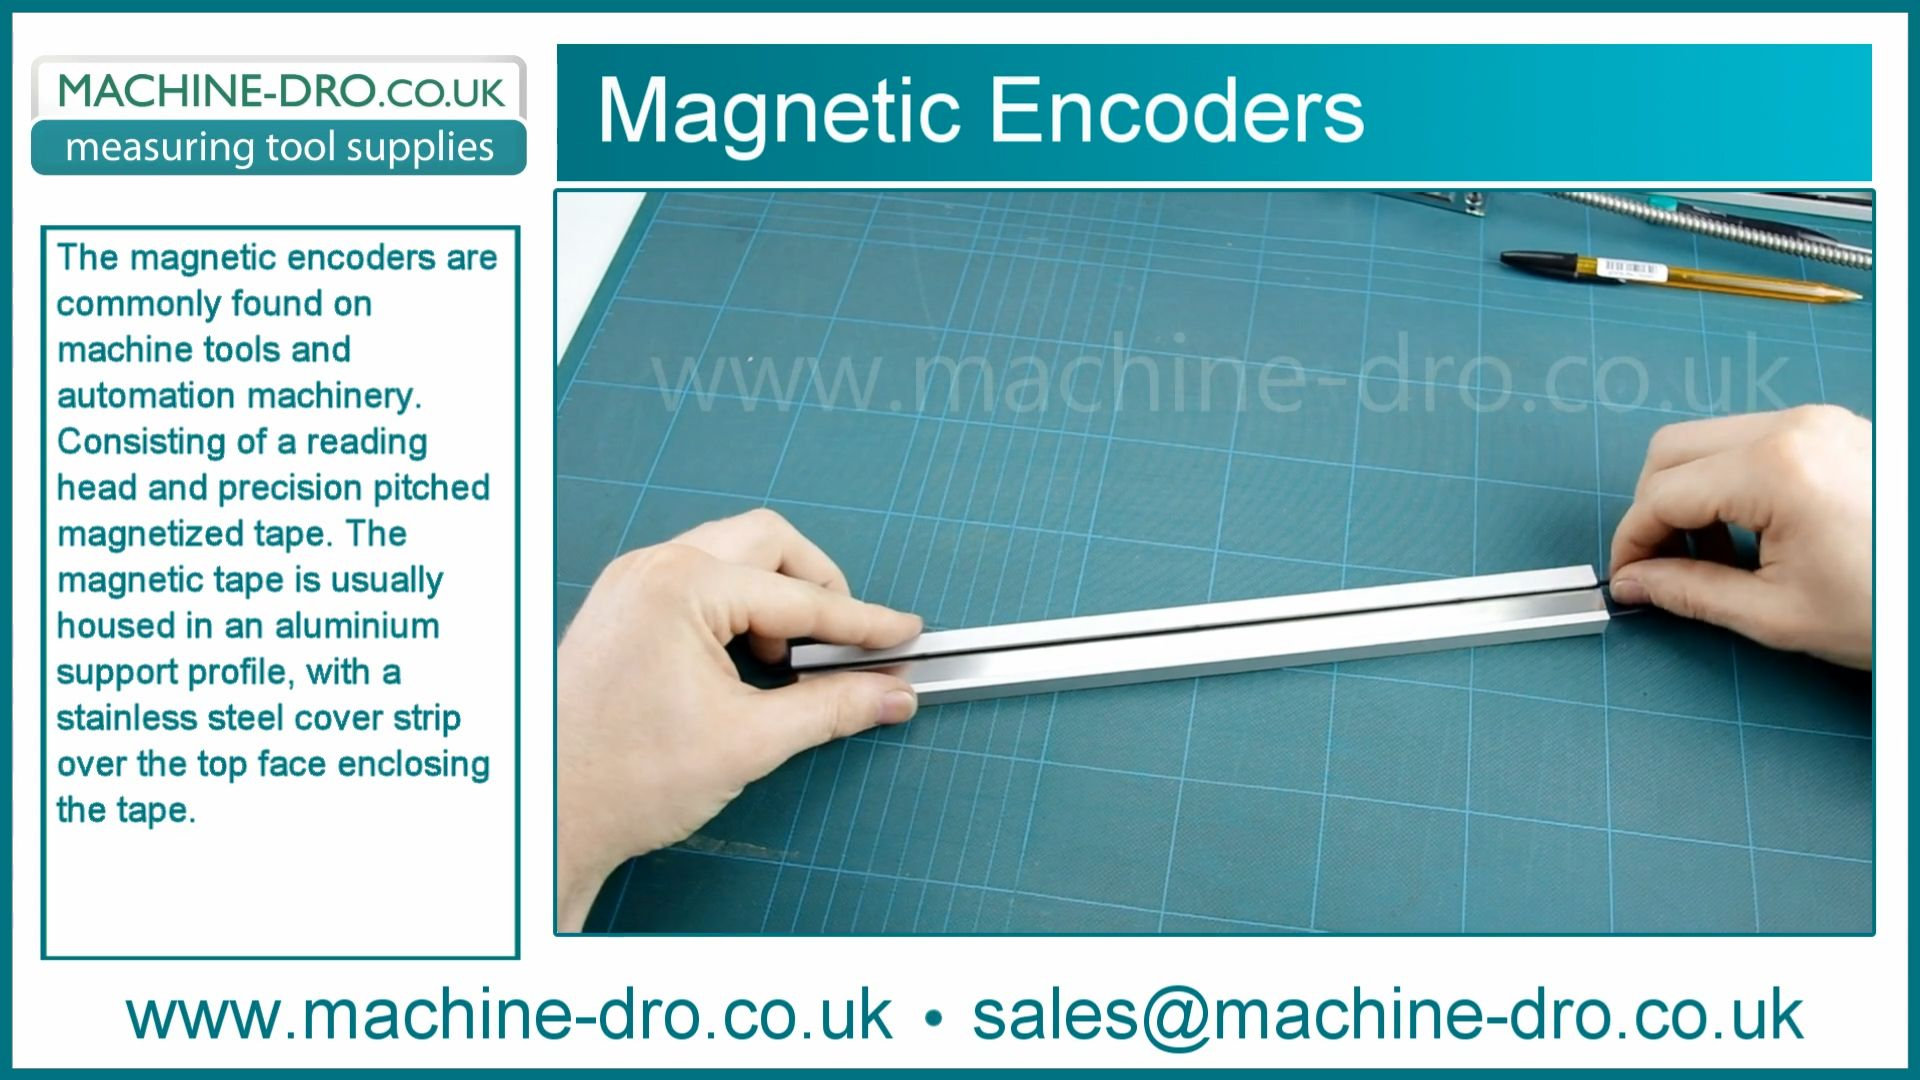 Magnetic Encoders